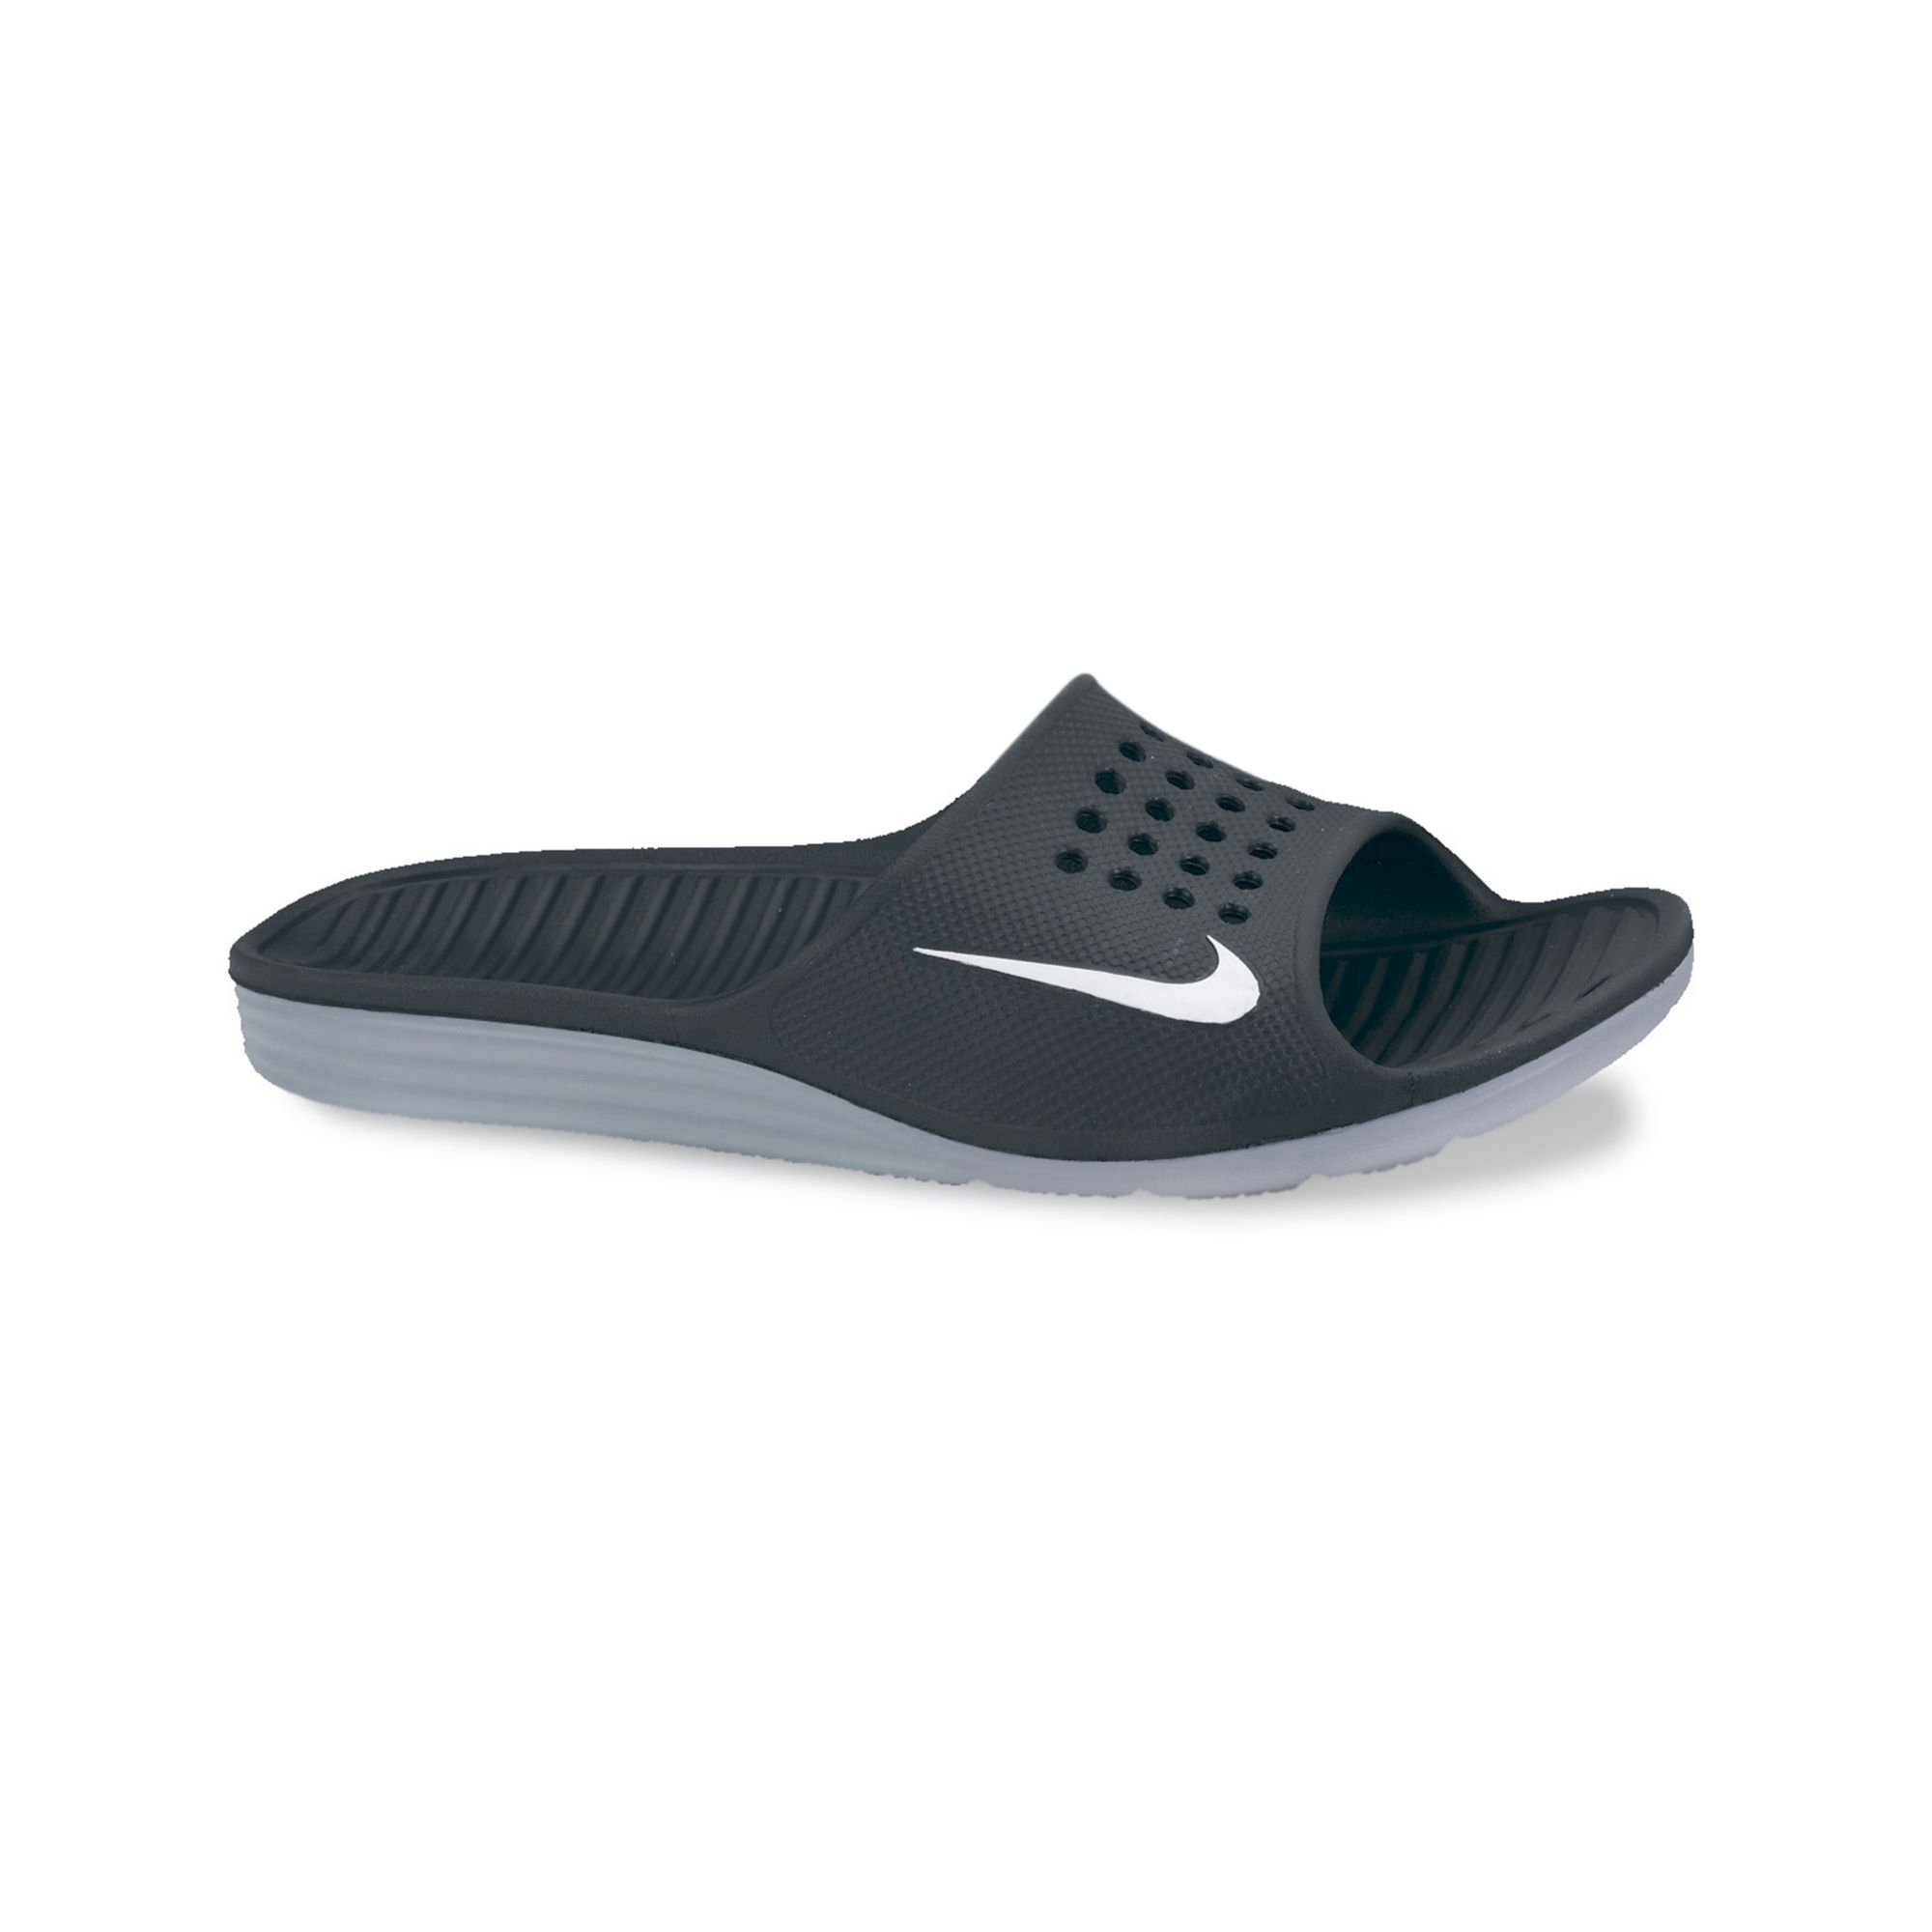 Find the latest women's slides, sandals and flip flops for before and after workouts at universities2017.ml Enjoy free US shipping and returns with NikePlus.